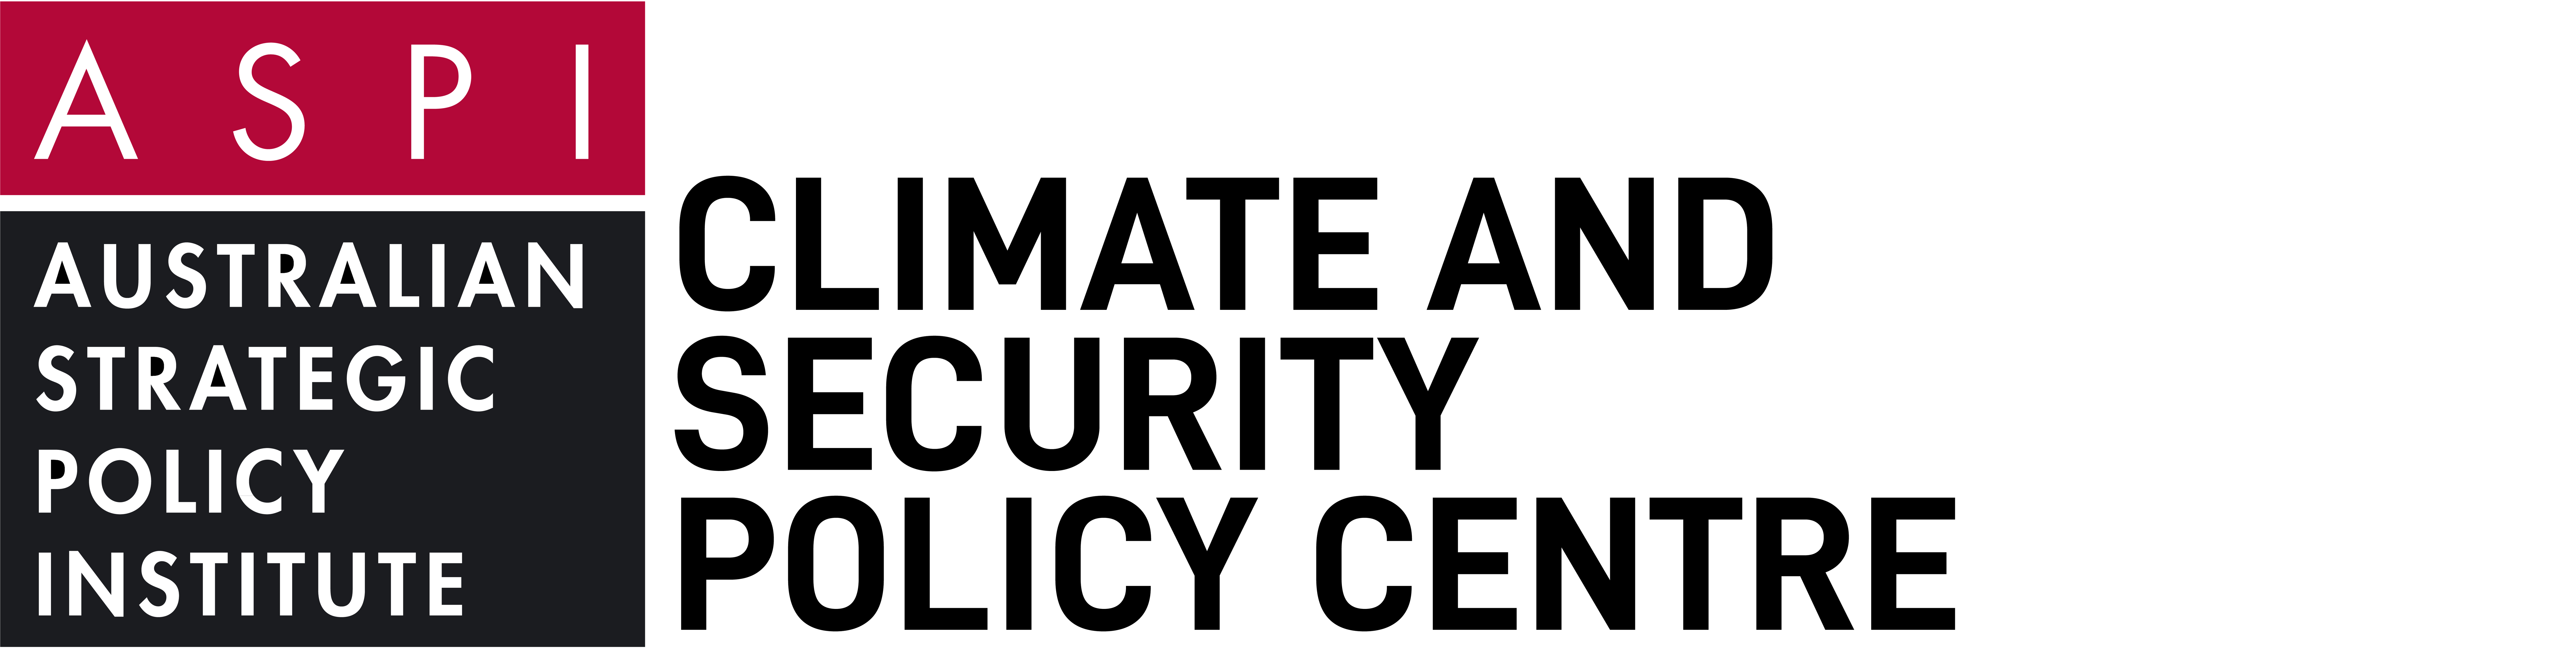 Climate and Security Policy Centre